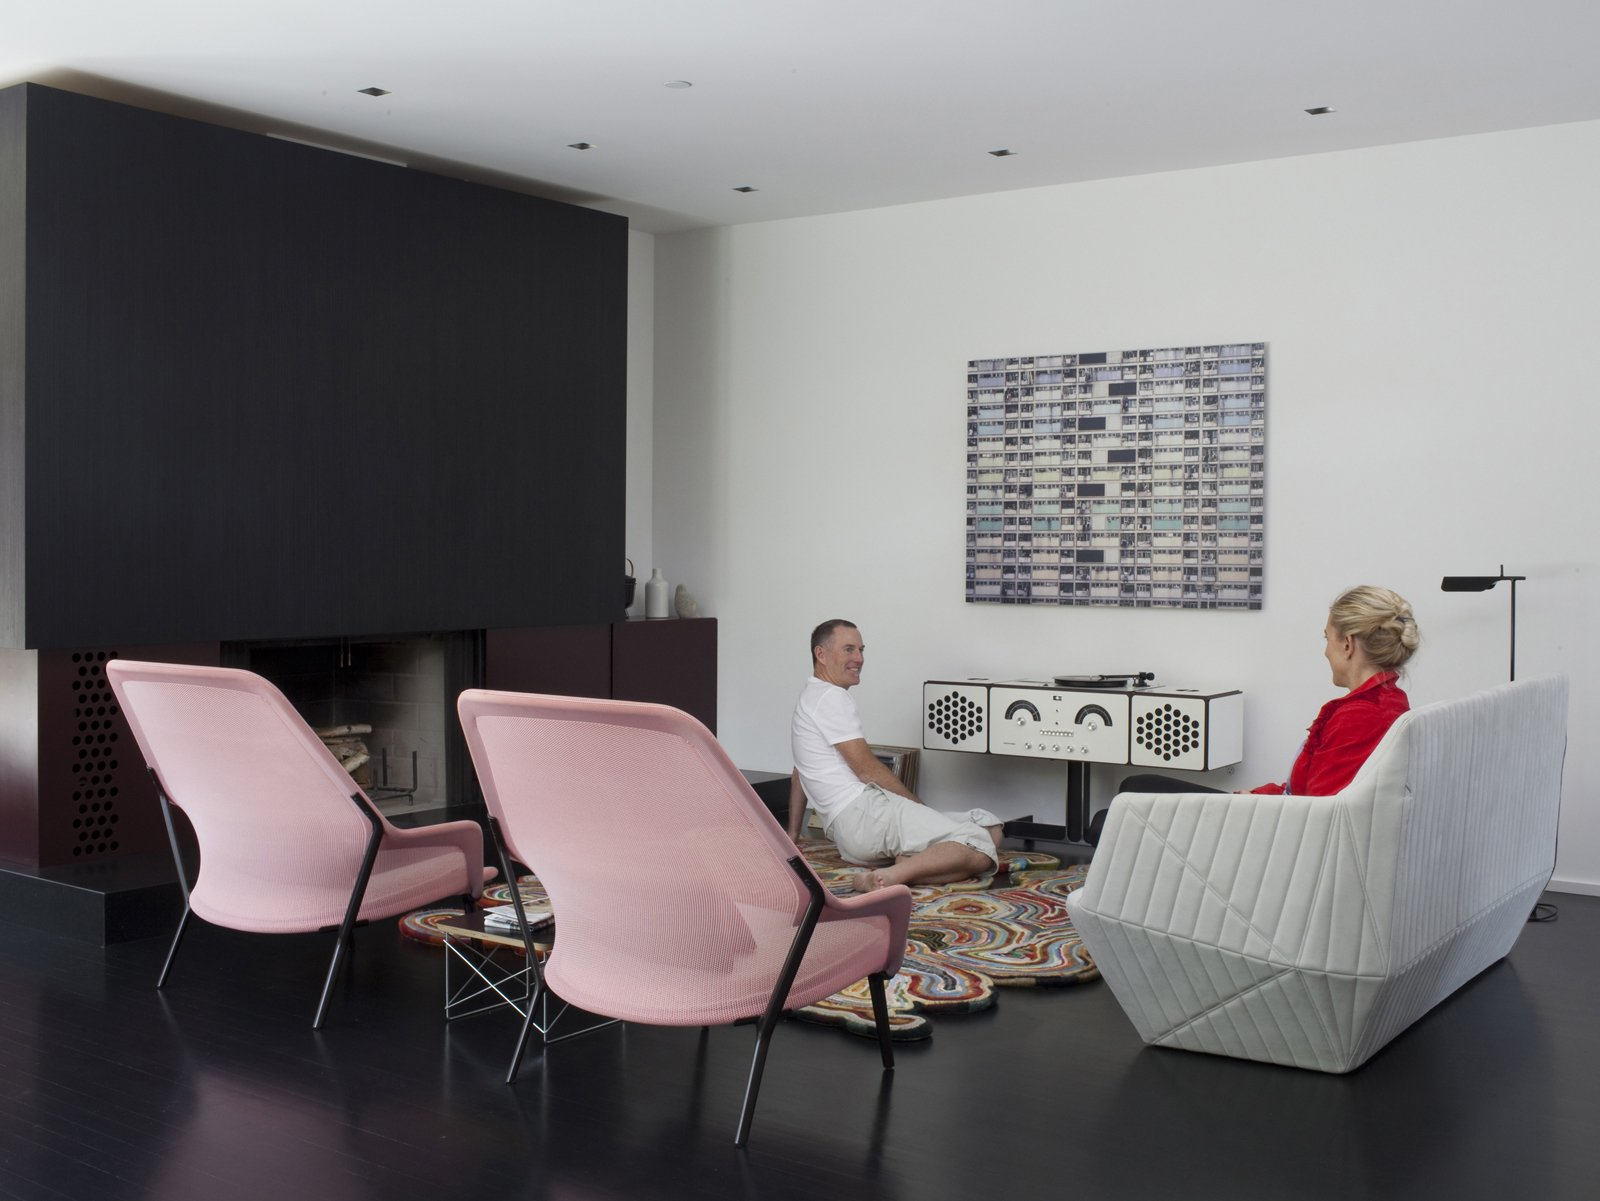 Living Room, End Tables, Rug Floor, Dark Hardwood Floor, Standard Layout Fireplace, Floor Lighting, Chair, Sofa, and Recessed Lighting The living room is home to two Bouroullec Brothers designs: the Facett sofa for Ligne Roset, and the Slow chair for Vitra.  Photo 1 of 1 in 20 Audio Products For the Modern Music Lover from Designed In-House